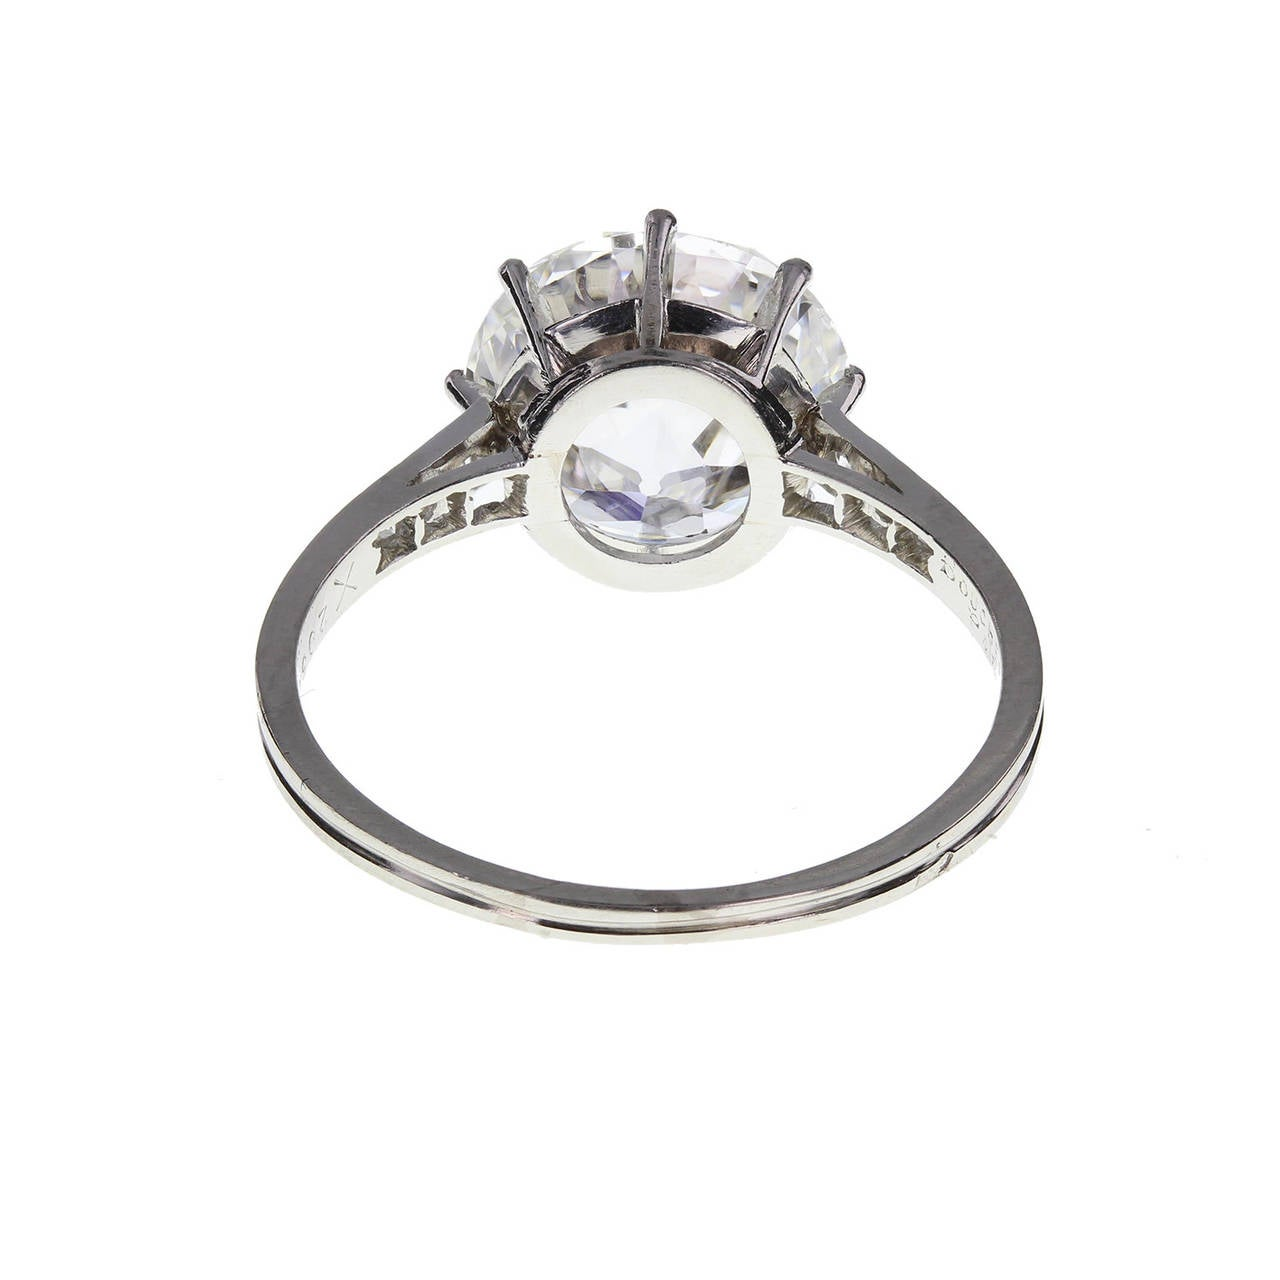 Boucheron 3.91 Carat Brilliant-Cut Diamond Platinum Engagement Ring In Excellent Condition For Sale In Newcastle Upon Tyne, GB